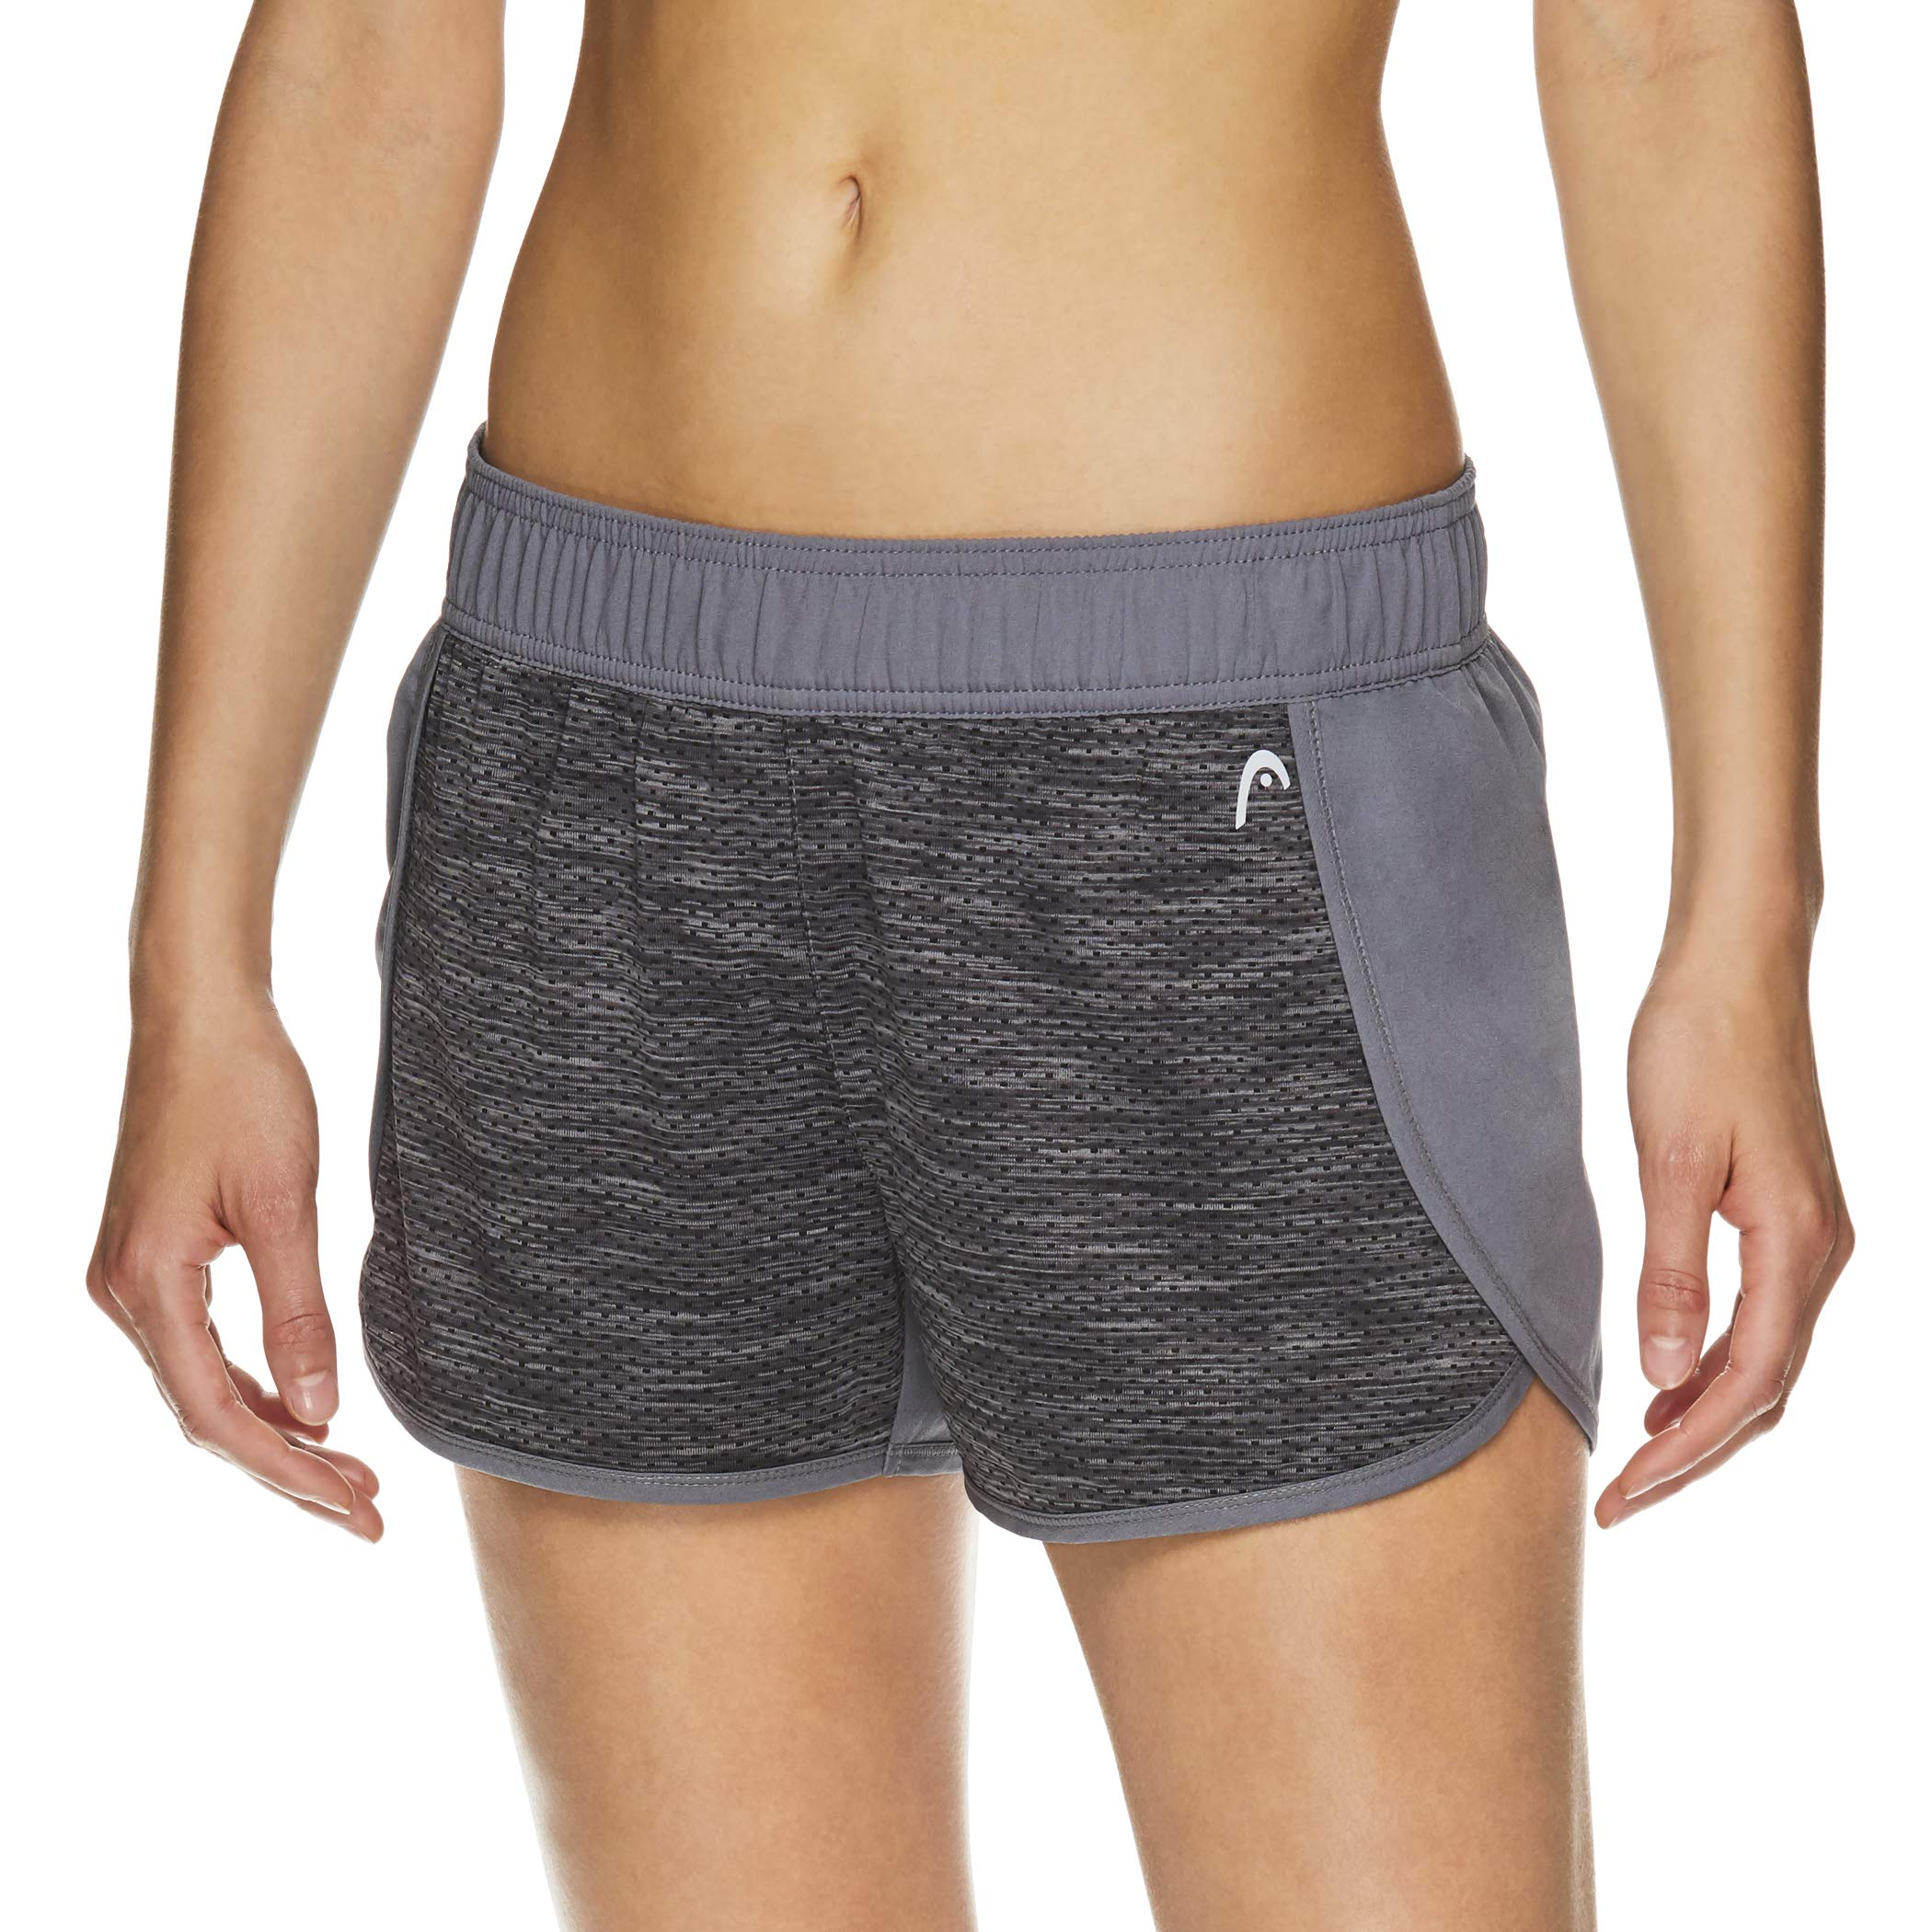 HEAD Women's Athletic Workout Shorts - Polyester Gym Training & Running Short - Quietshade, Small